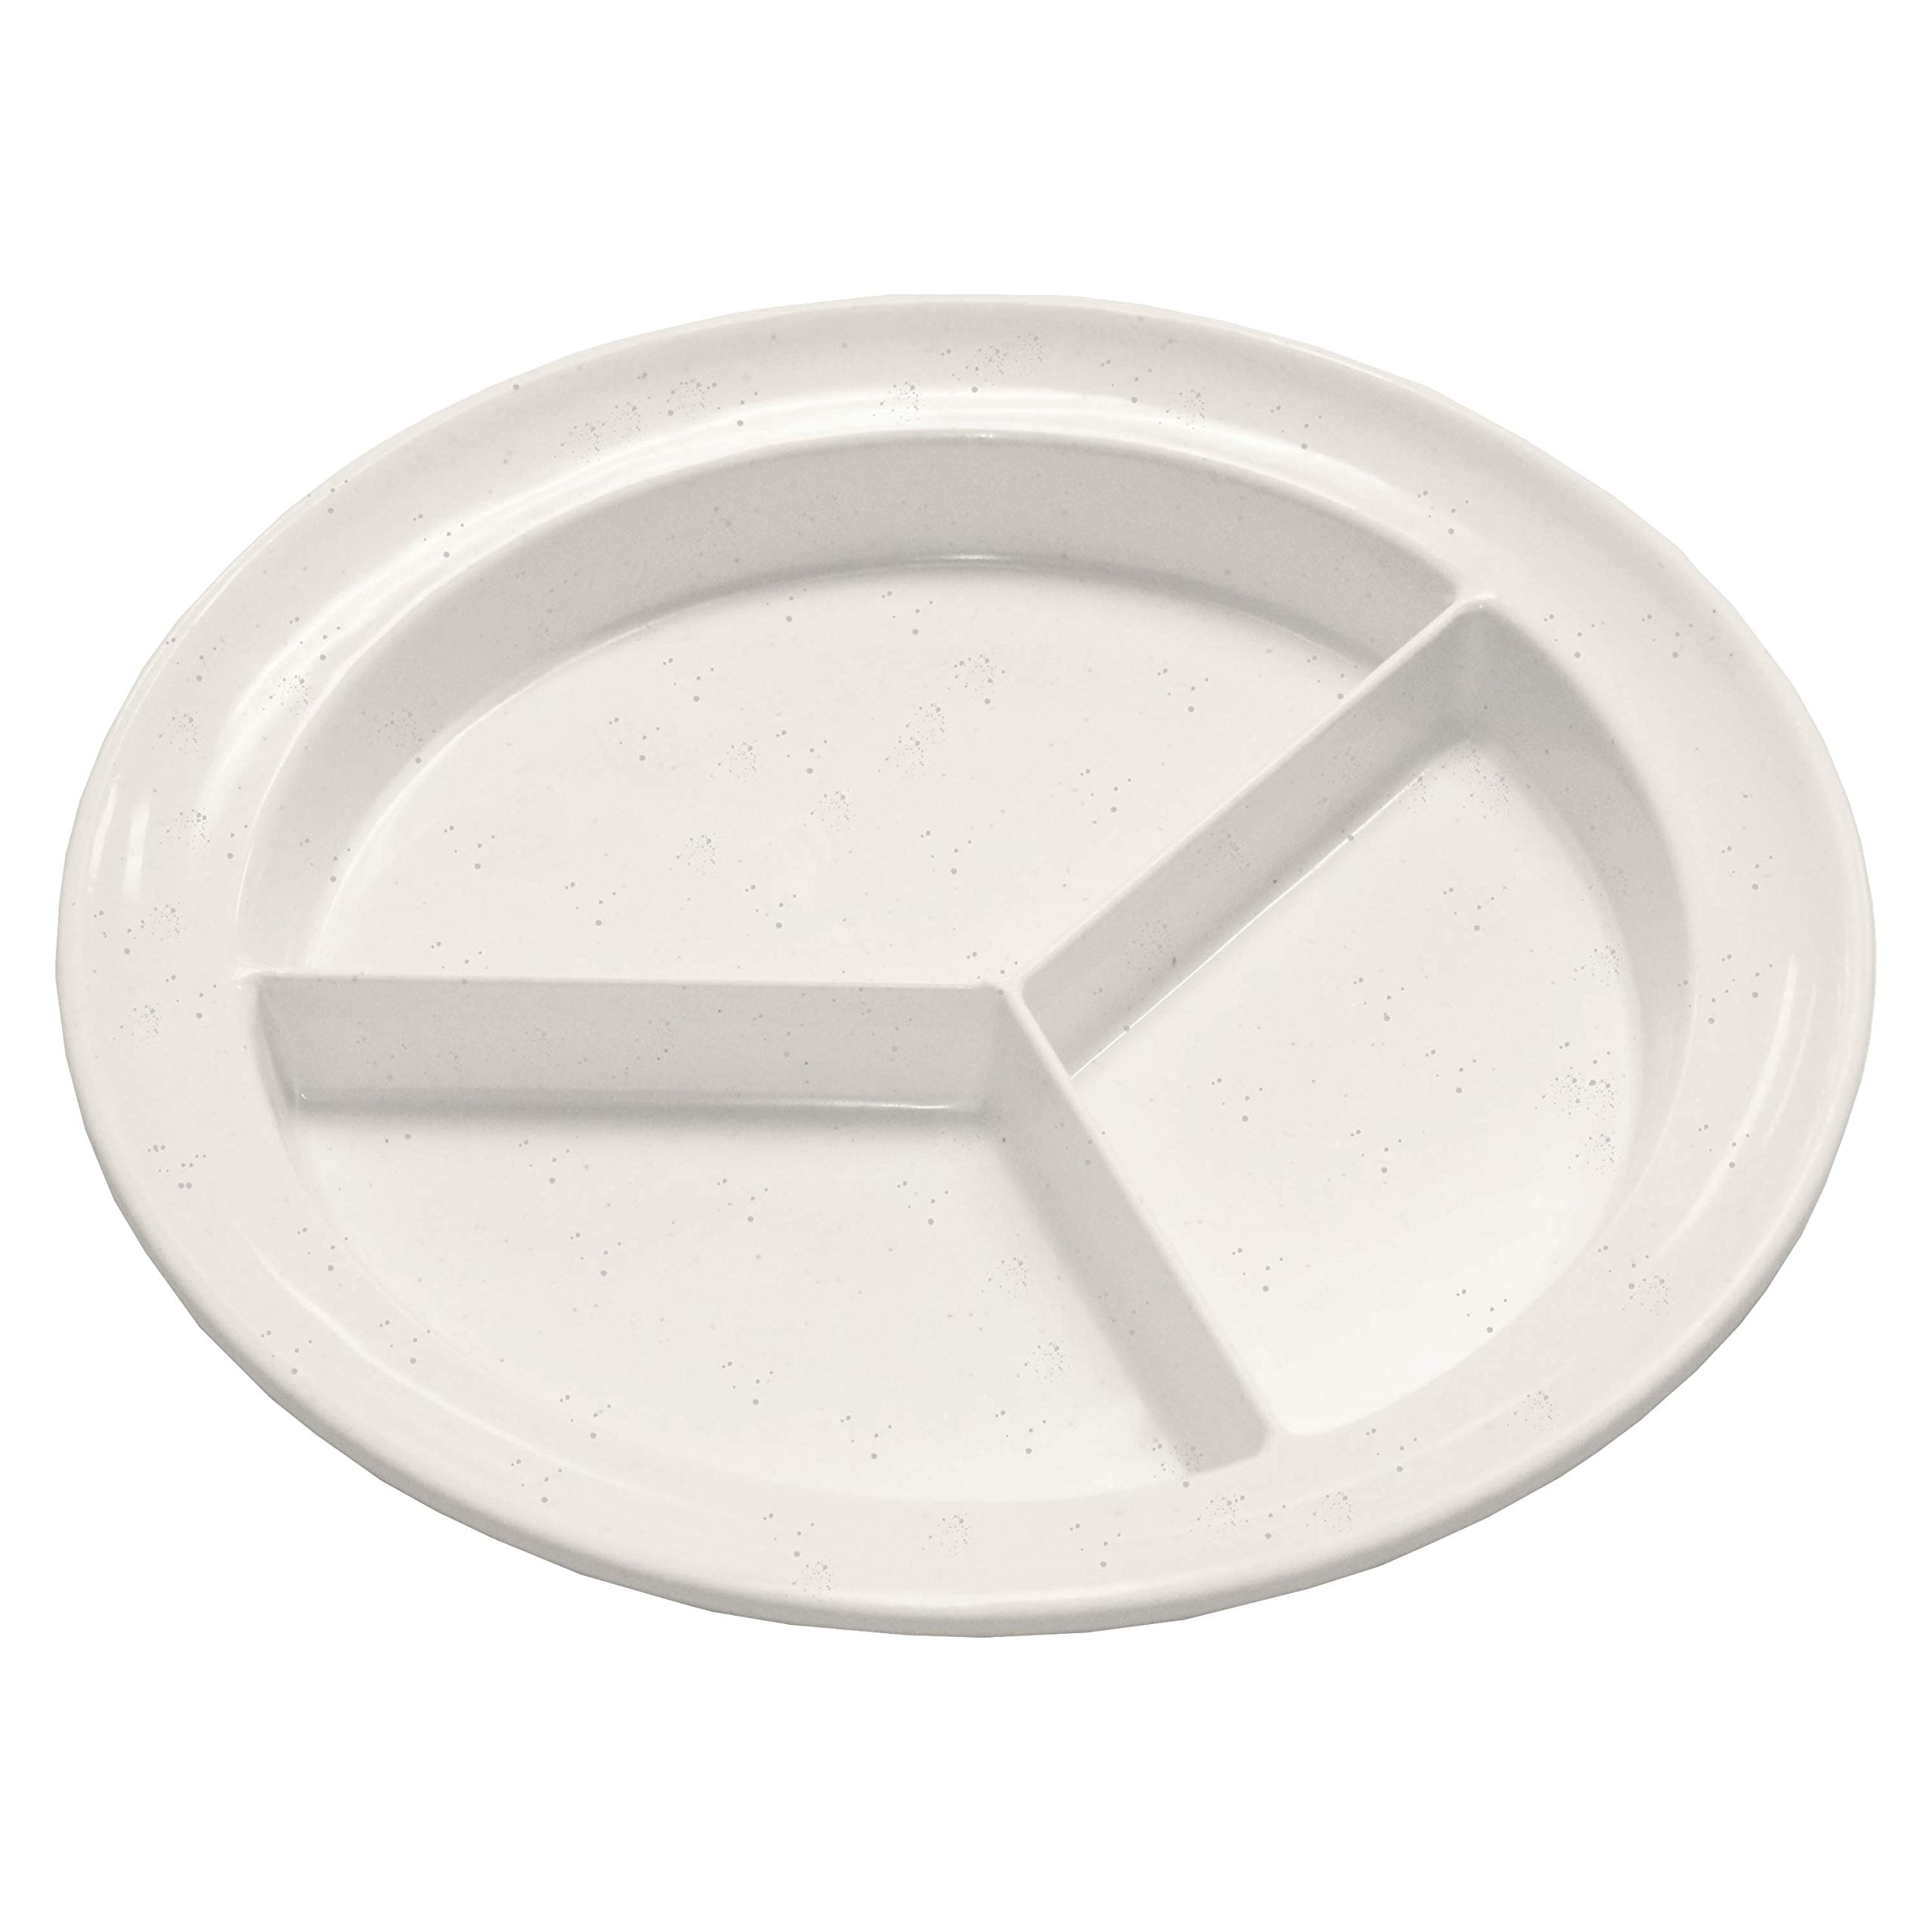 Rehabilitation Advantage Compartment Partitioned Dish for Healthy Eating and Portion Control